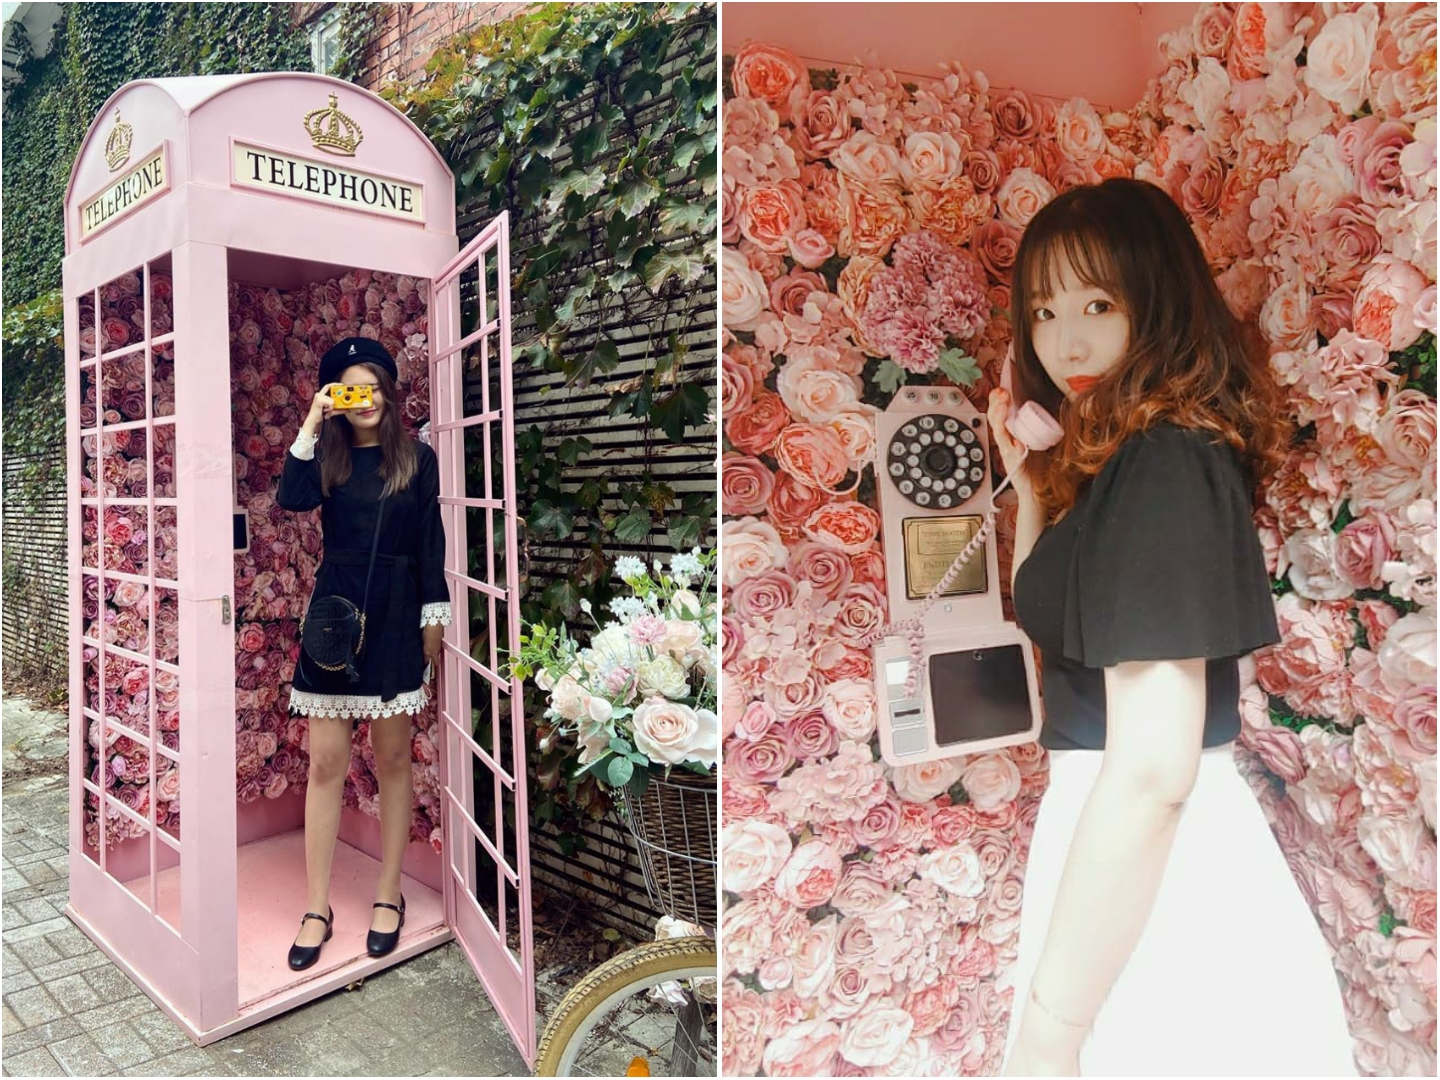 Rose Petal Yeonnam-dong - Floral payphone booth